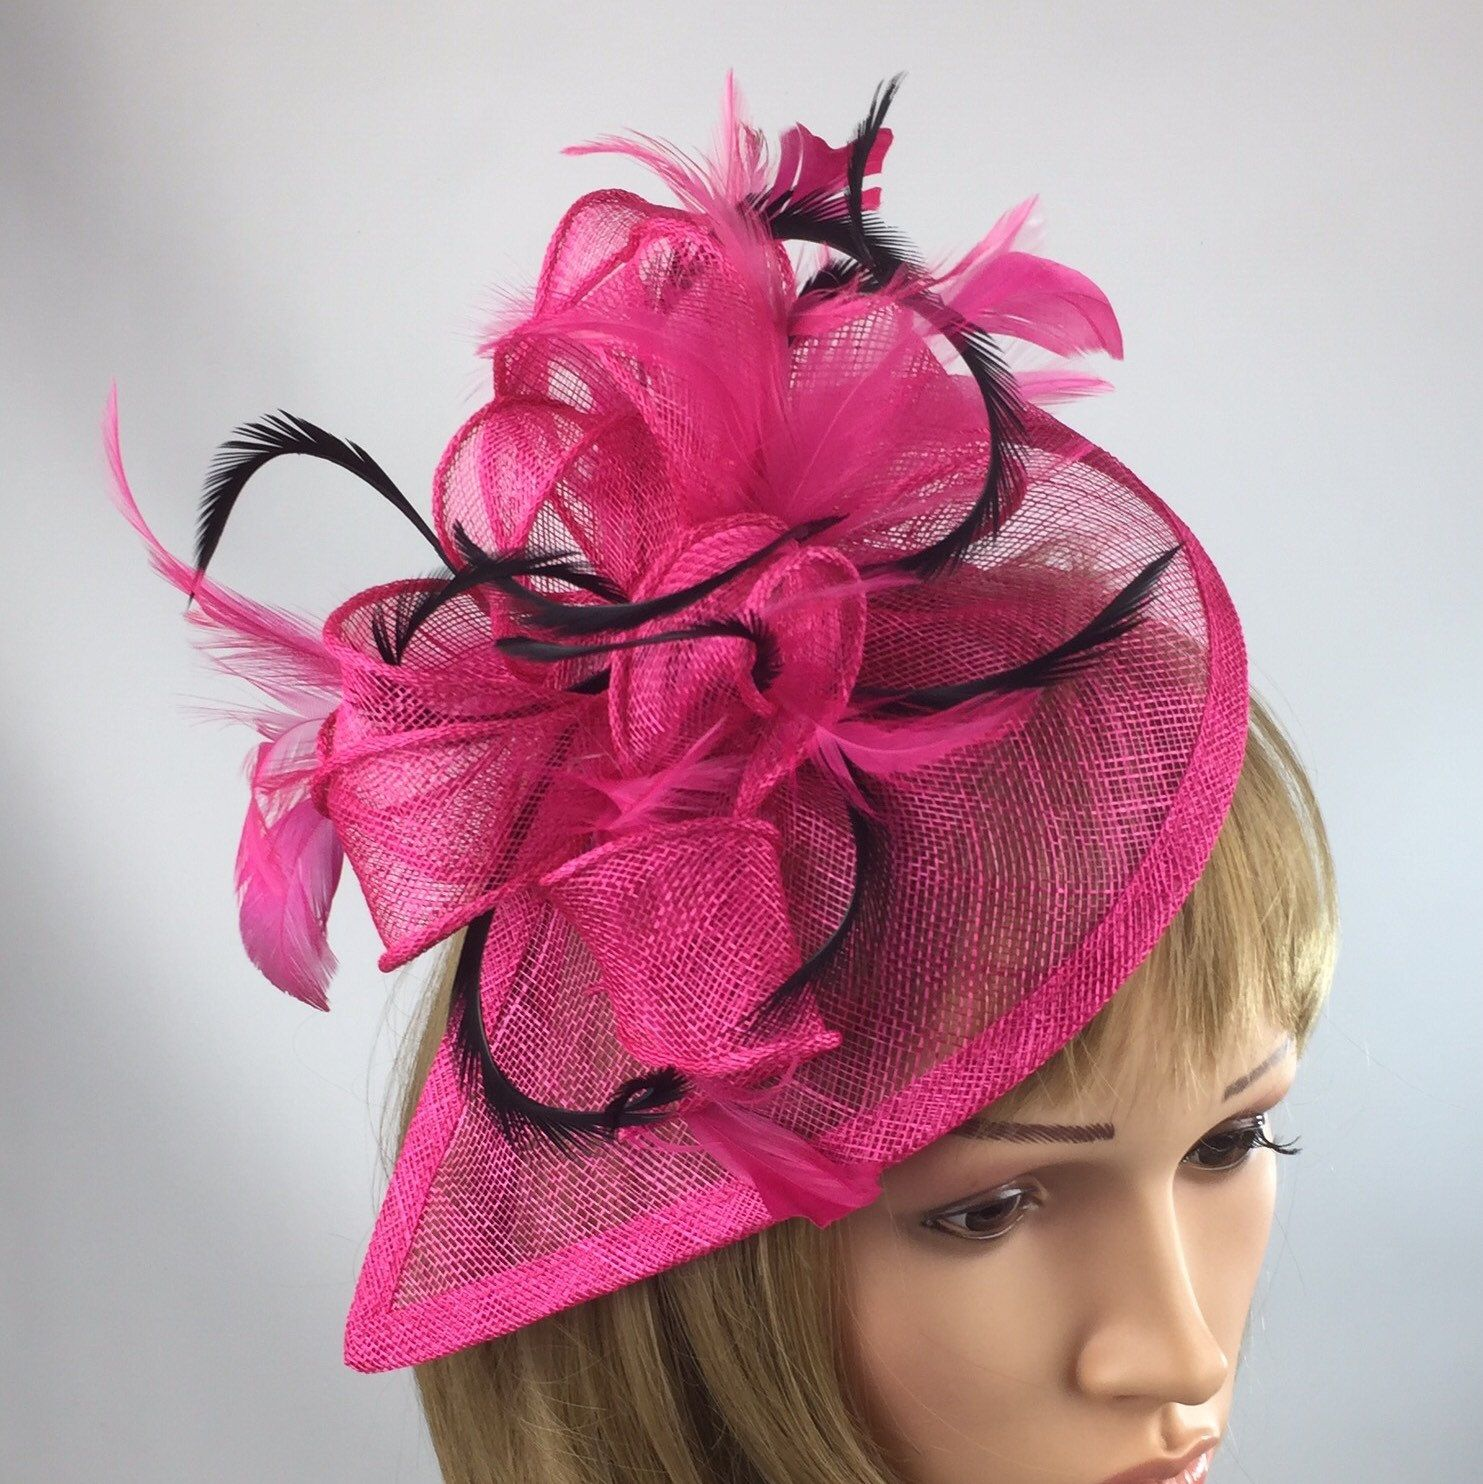 Visit Pretty Elegant 1 Etsy shop for all your fascinator and wedding ...